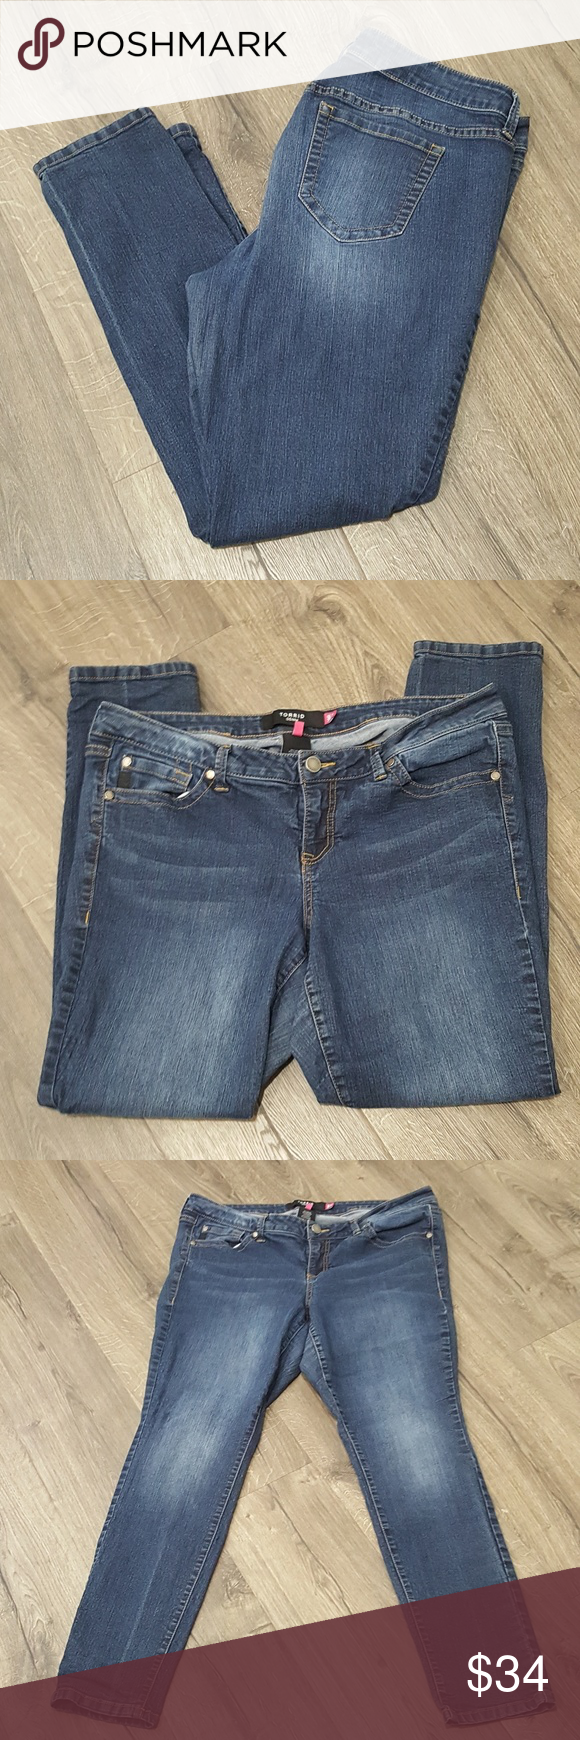 TORRID Jeans • Size 18 R TORRID Jeans Size 18 R Approx